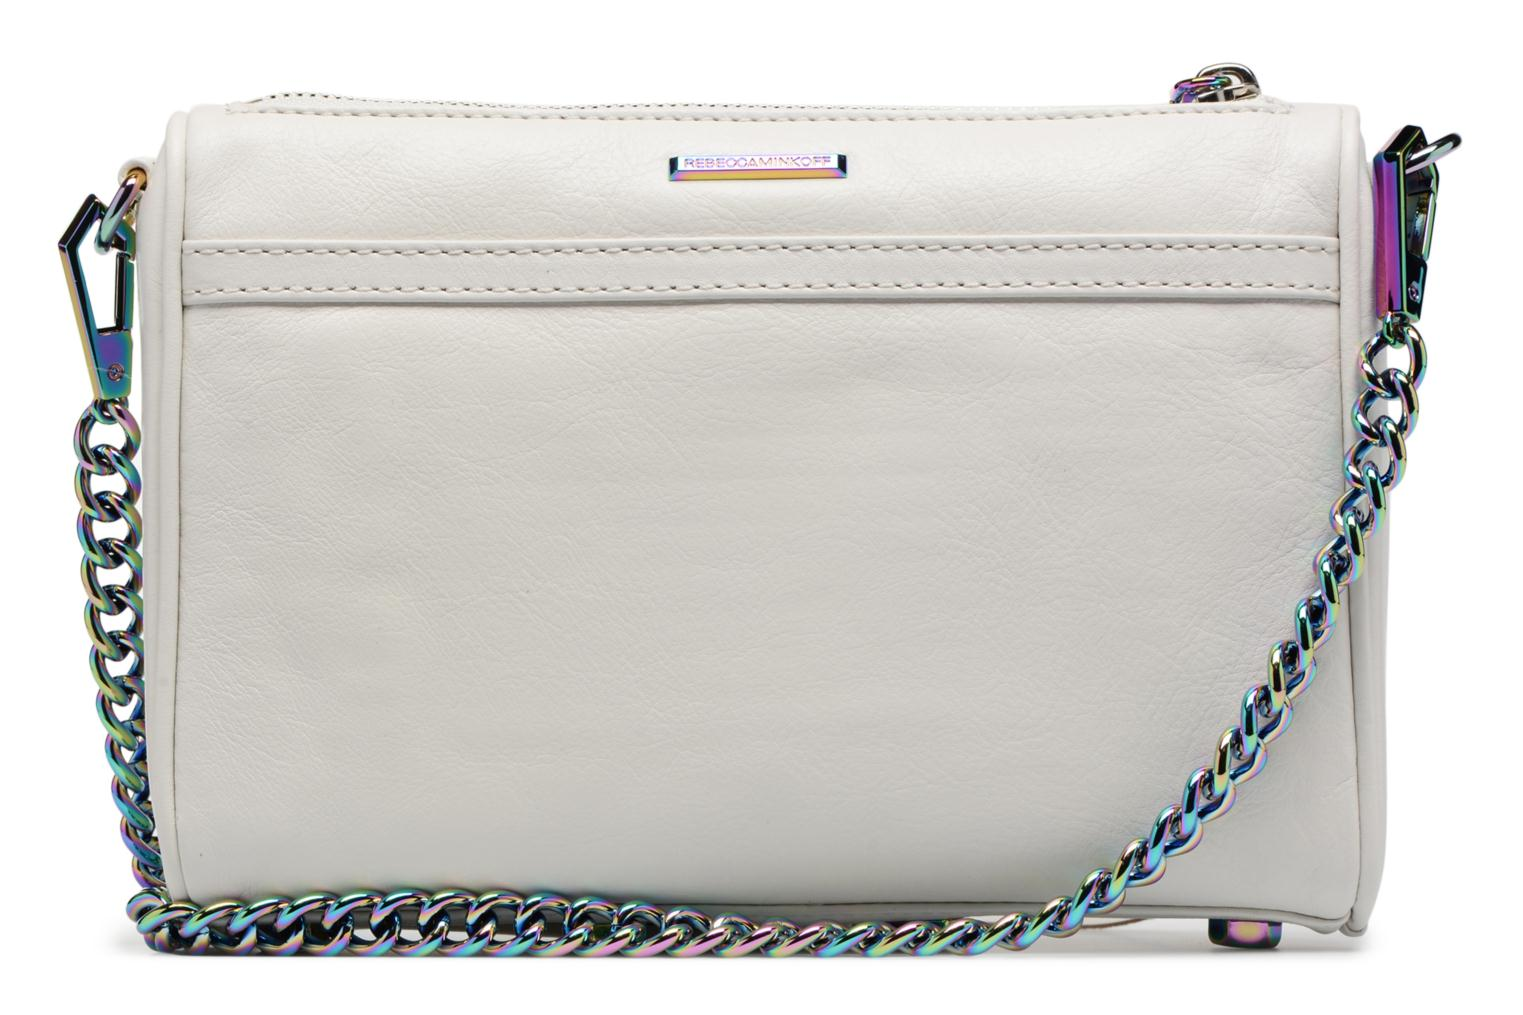 Handbags Rebecca Minkoff Mini MAC White front view